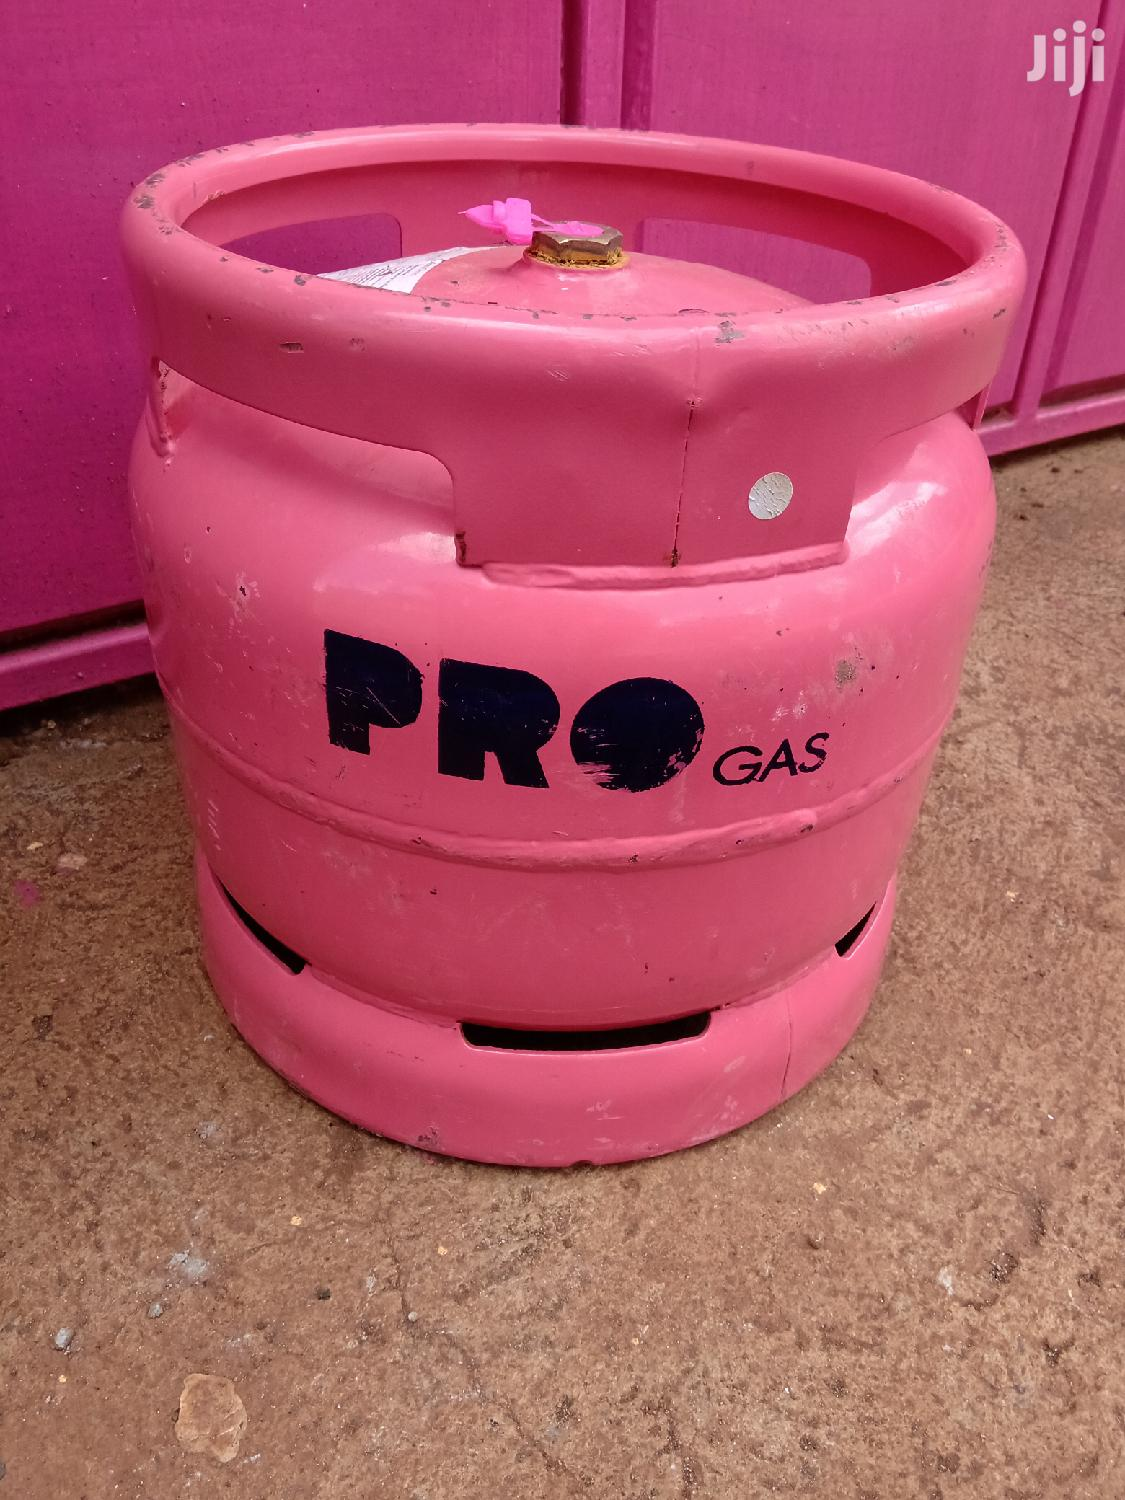 6kg Pro Gas Cylinder | Kitchen Appliances for sale in Ngara, Nairobi, Kenya